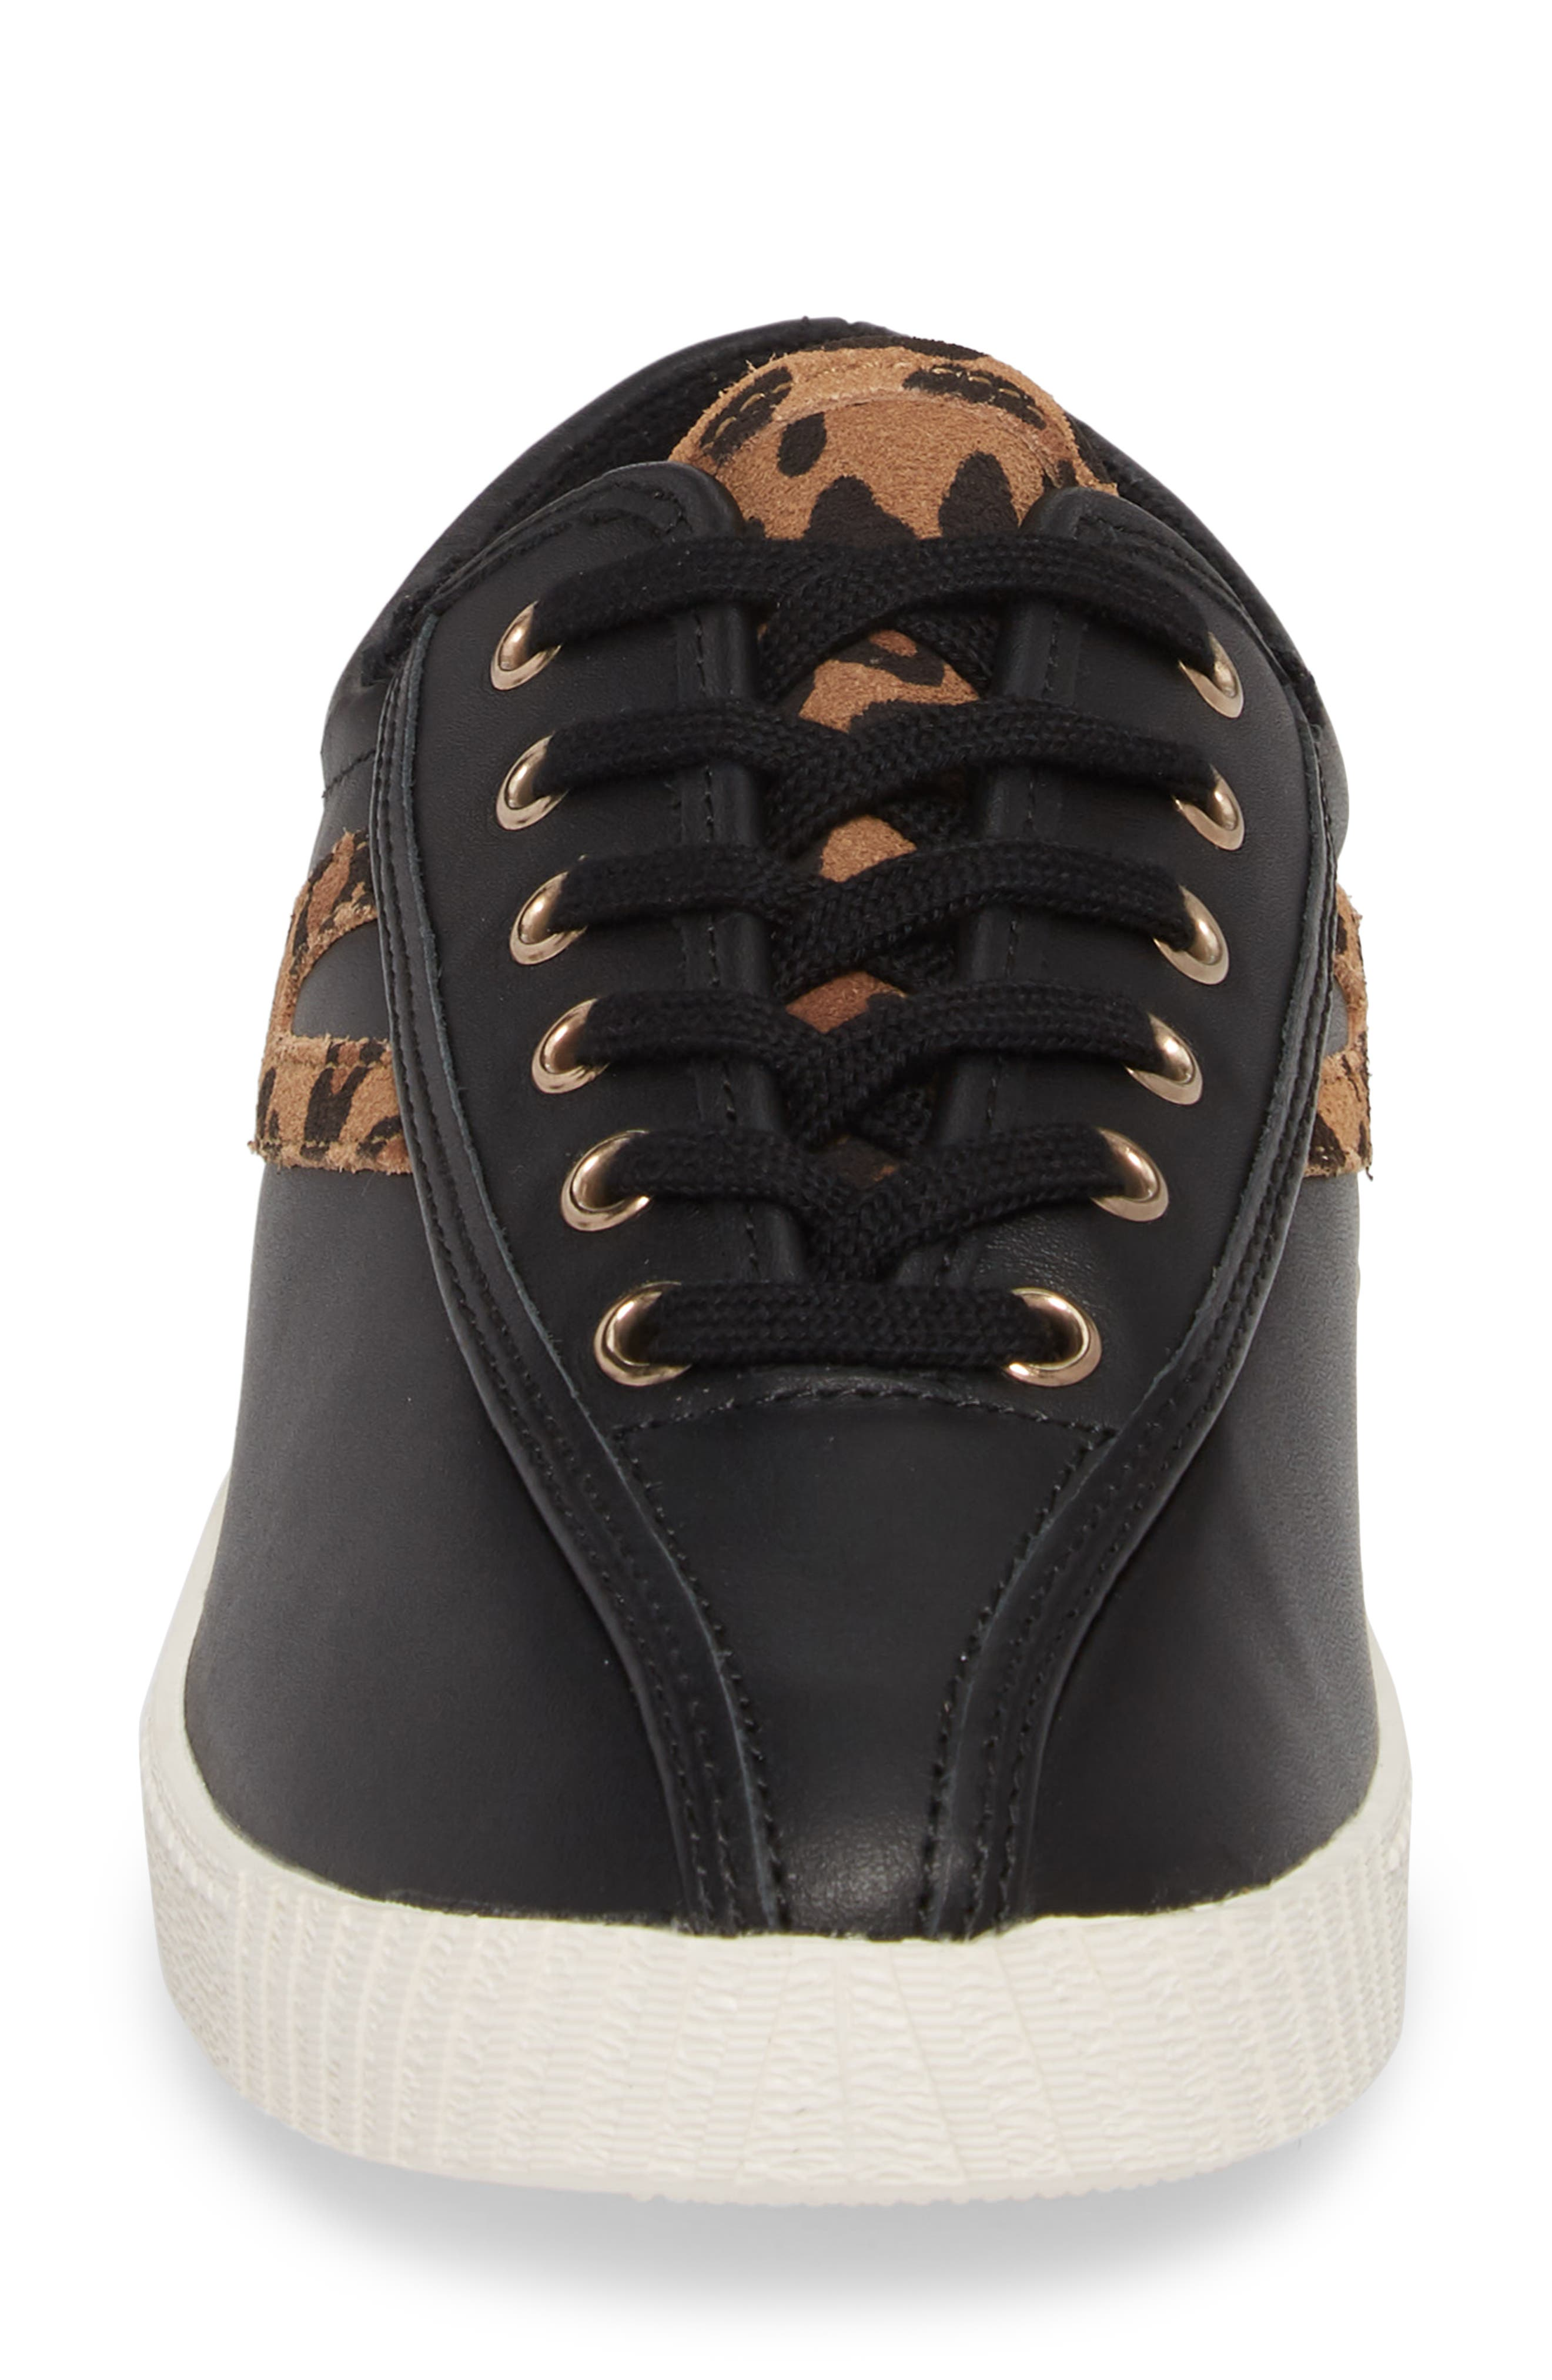 Patterned Sneaker,                             Alternate thumbnail 4, color,                             BLACK/ TAN/ BLACK LEATHER